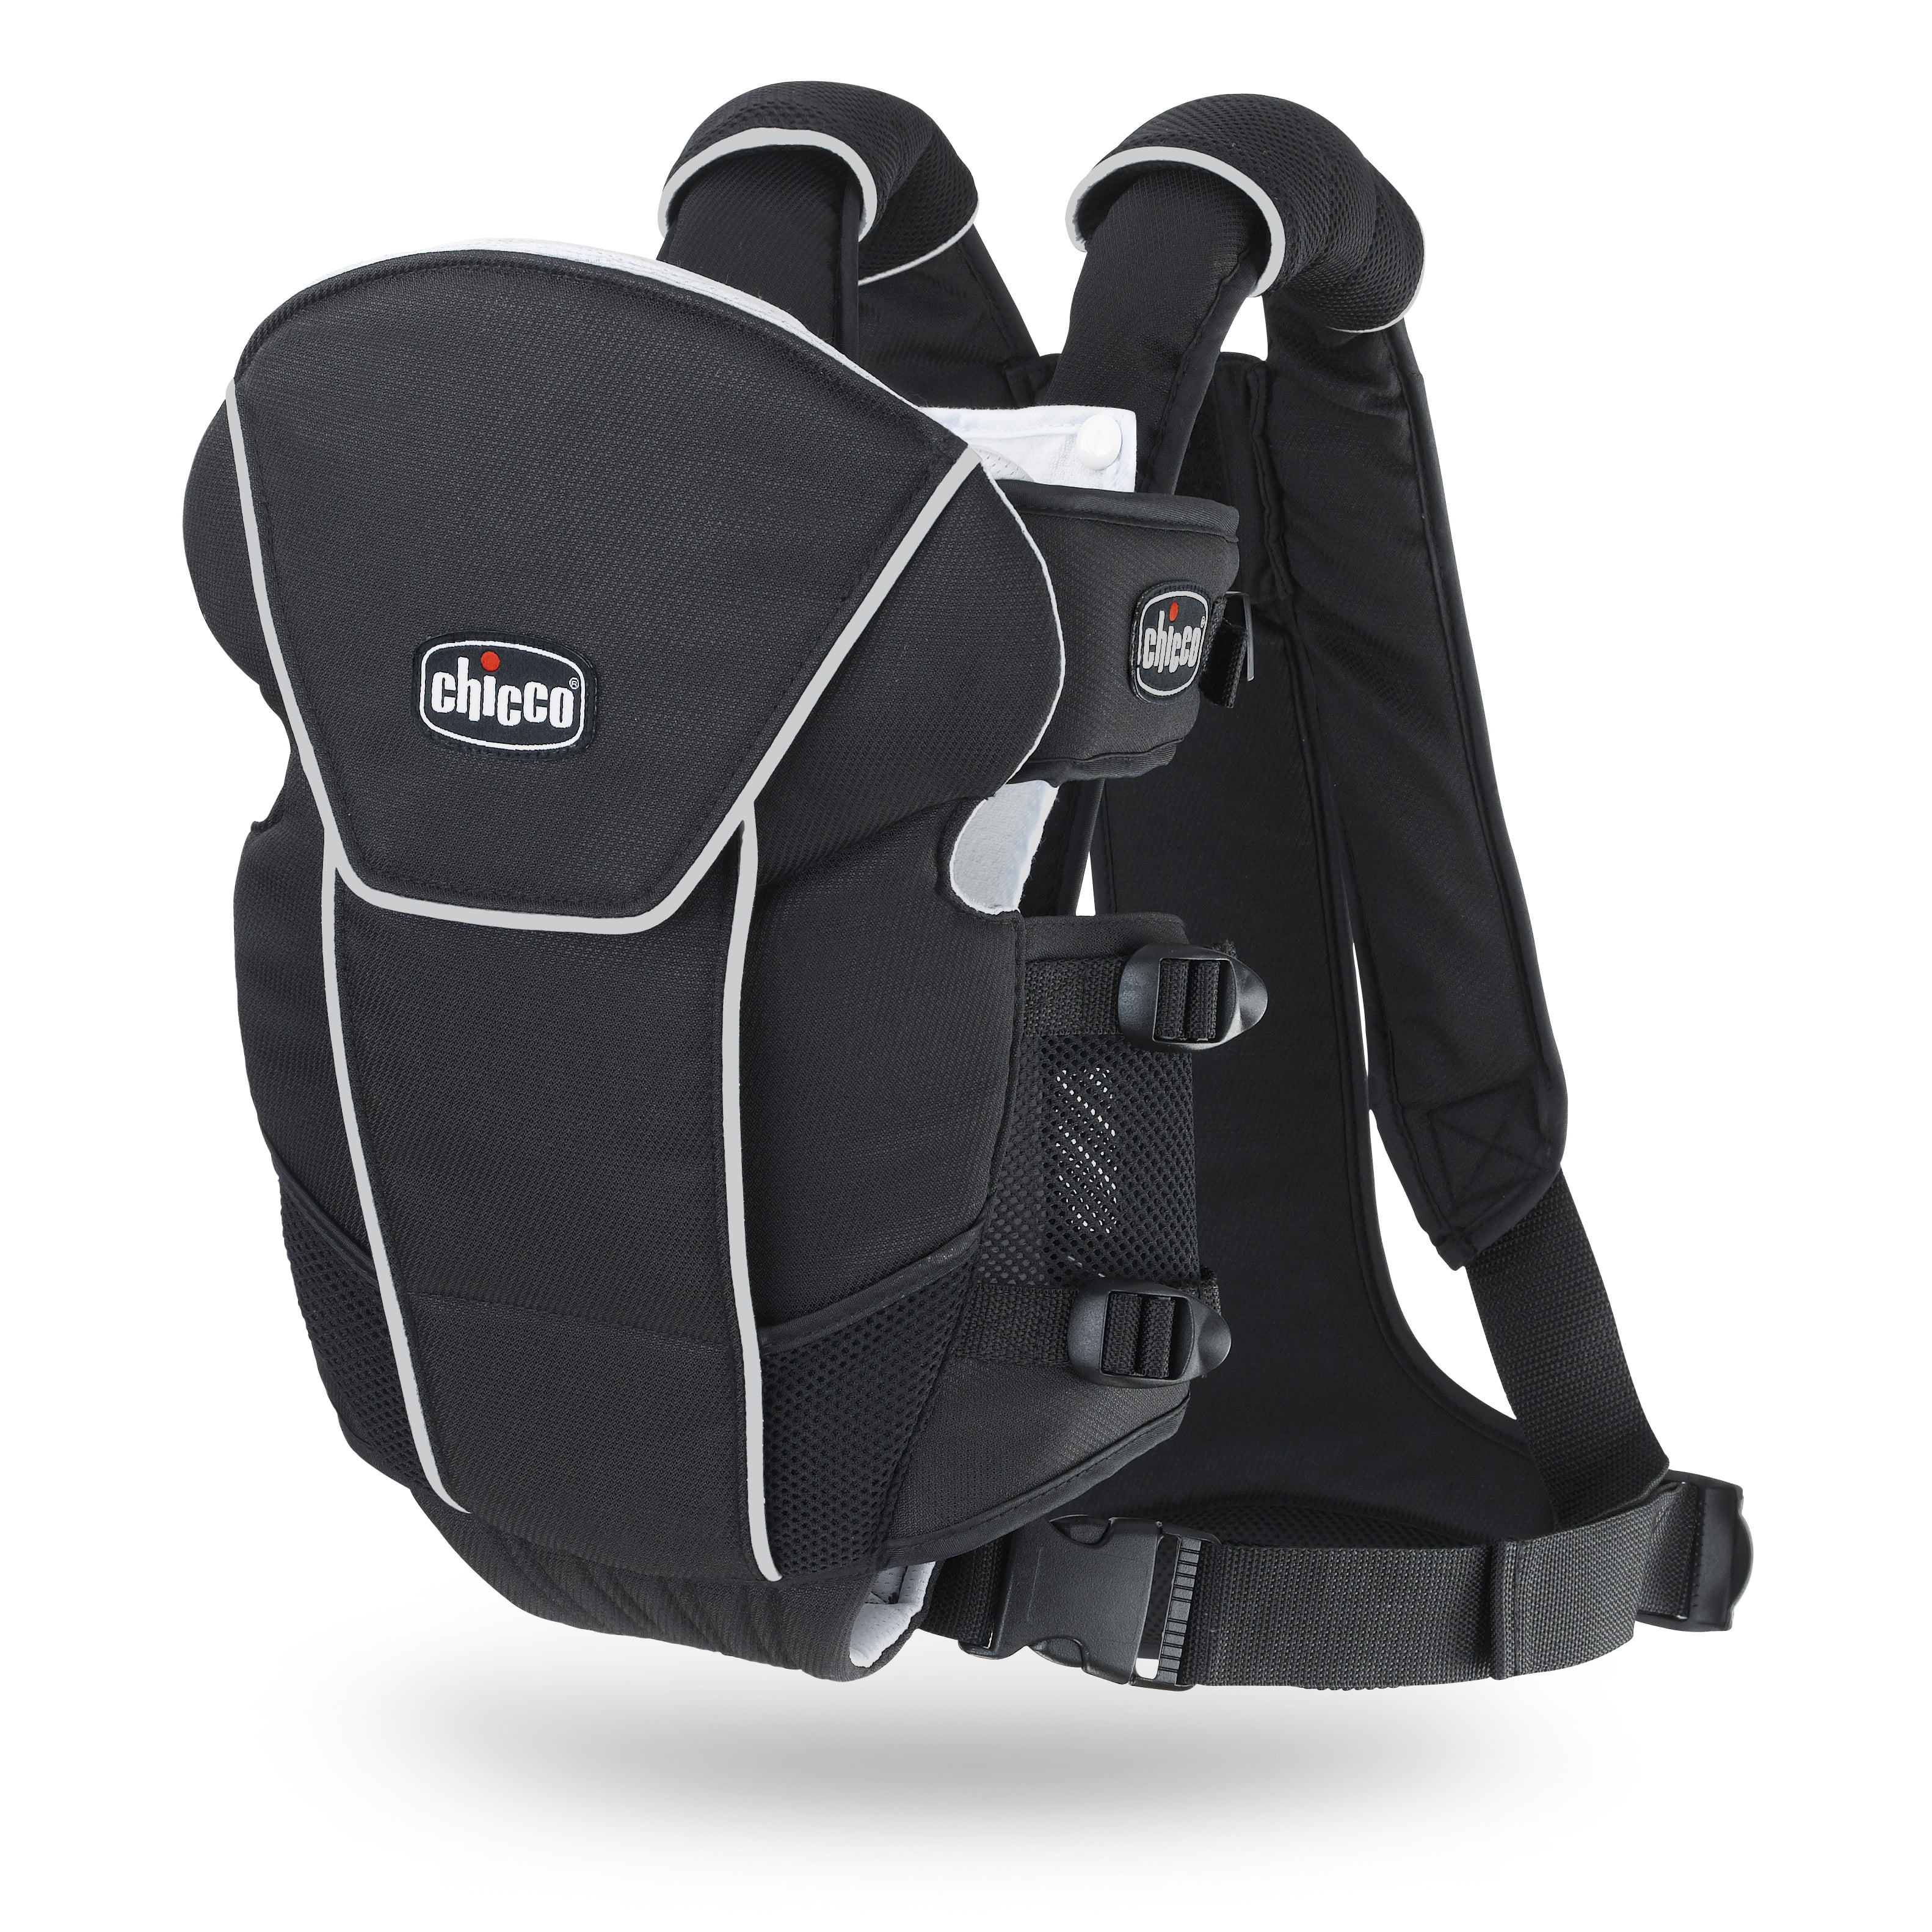 Chicco UltraSoft Magic Infant Carrier, Black by Chicco